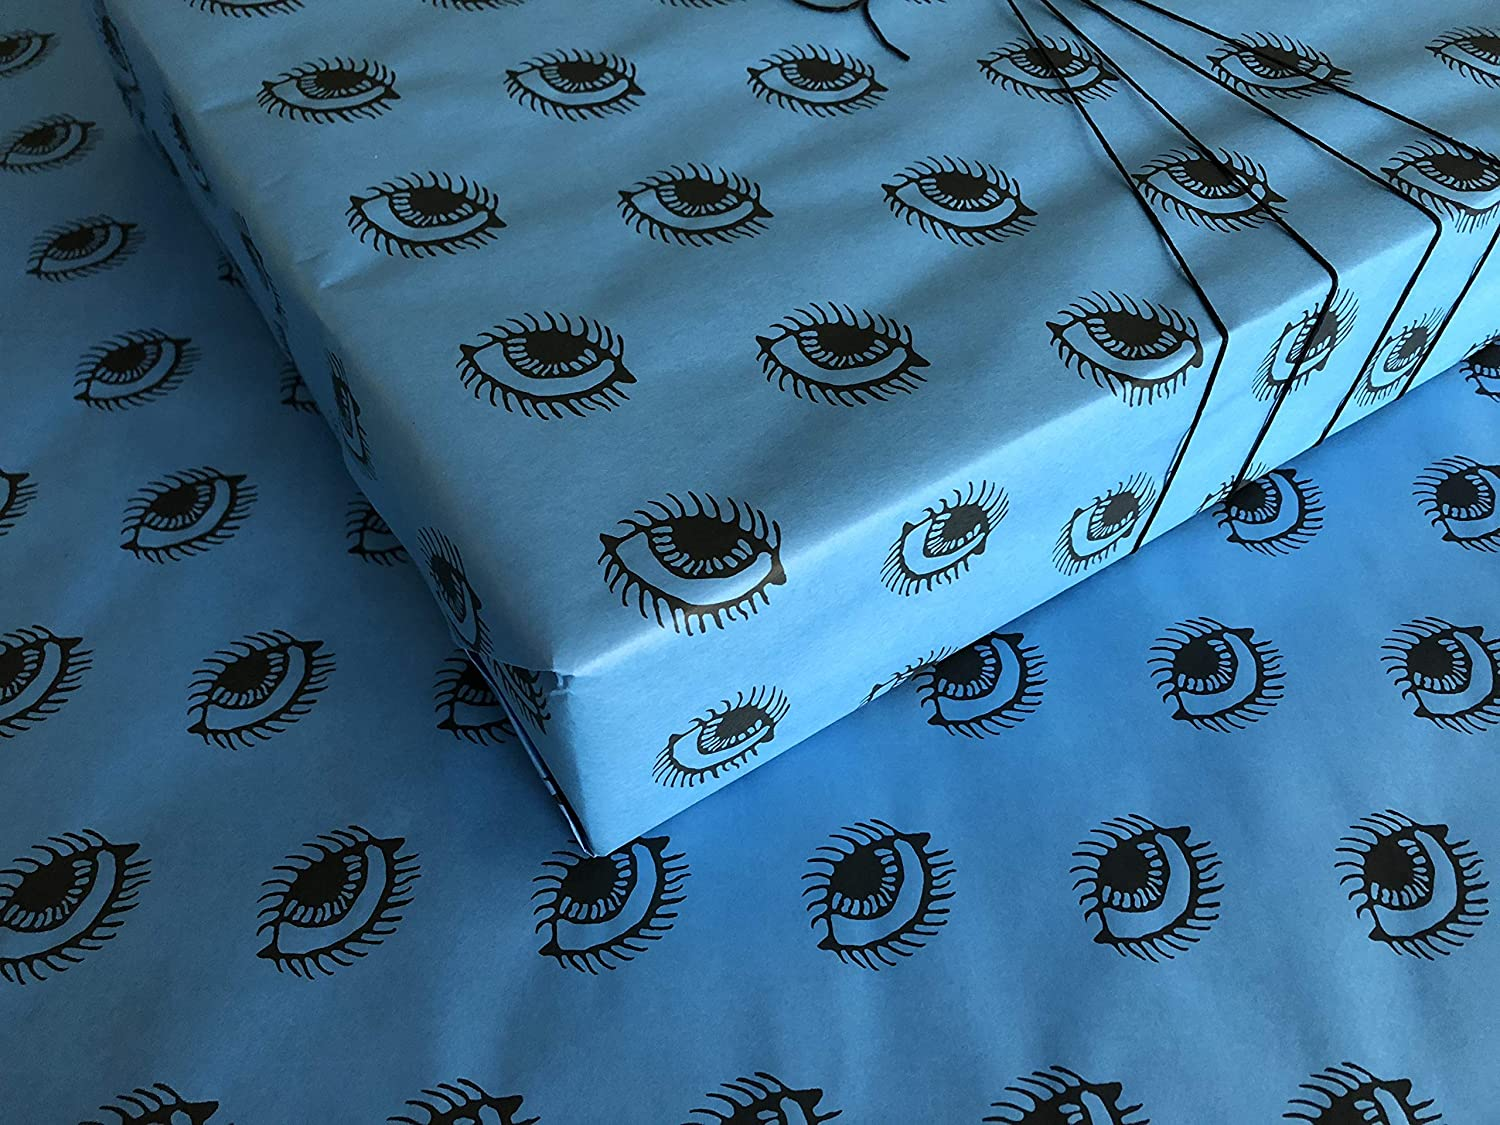 Roll of Spooky Eyes on Blue Gothic Wrapping Paper Who wouldn't love to have their Christmas gifts covered in eyes? Rebel against the ordinary and make your ...